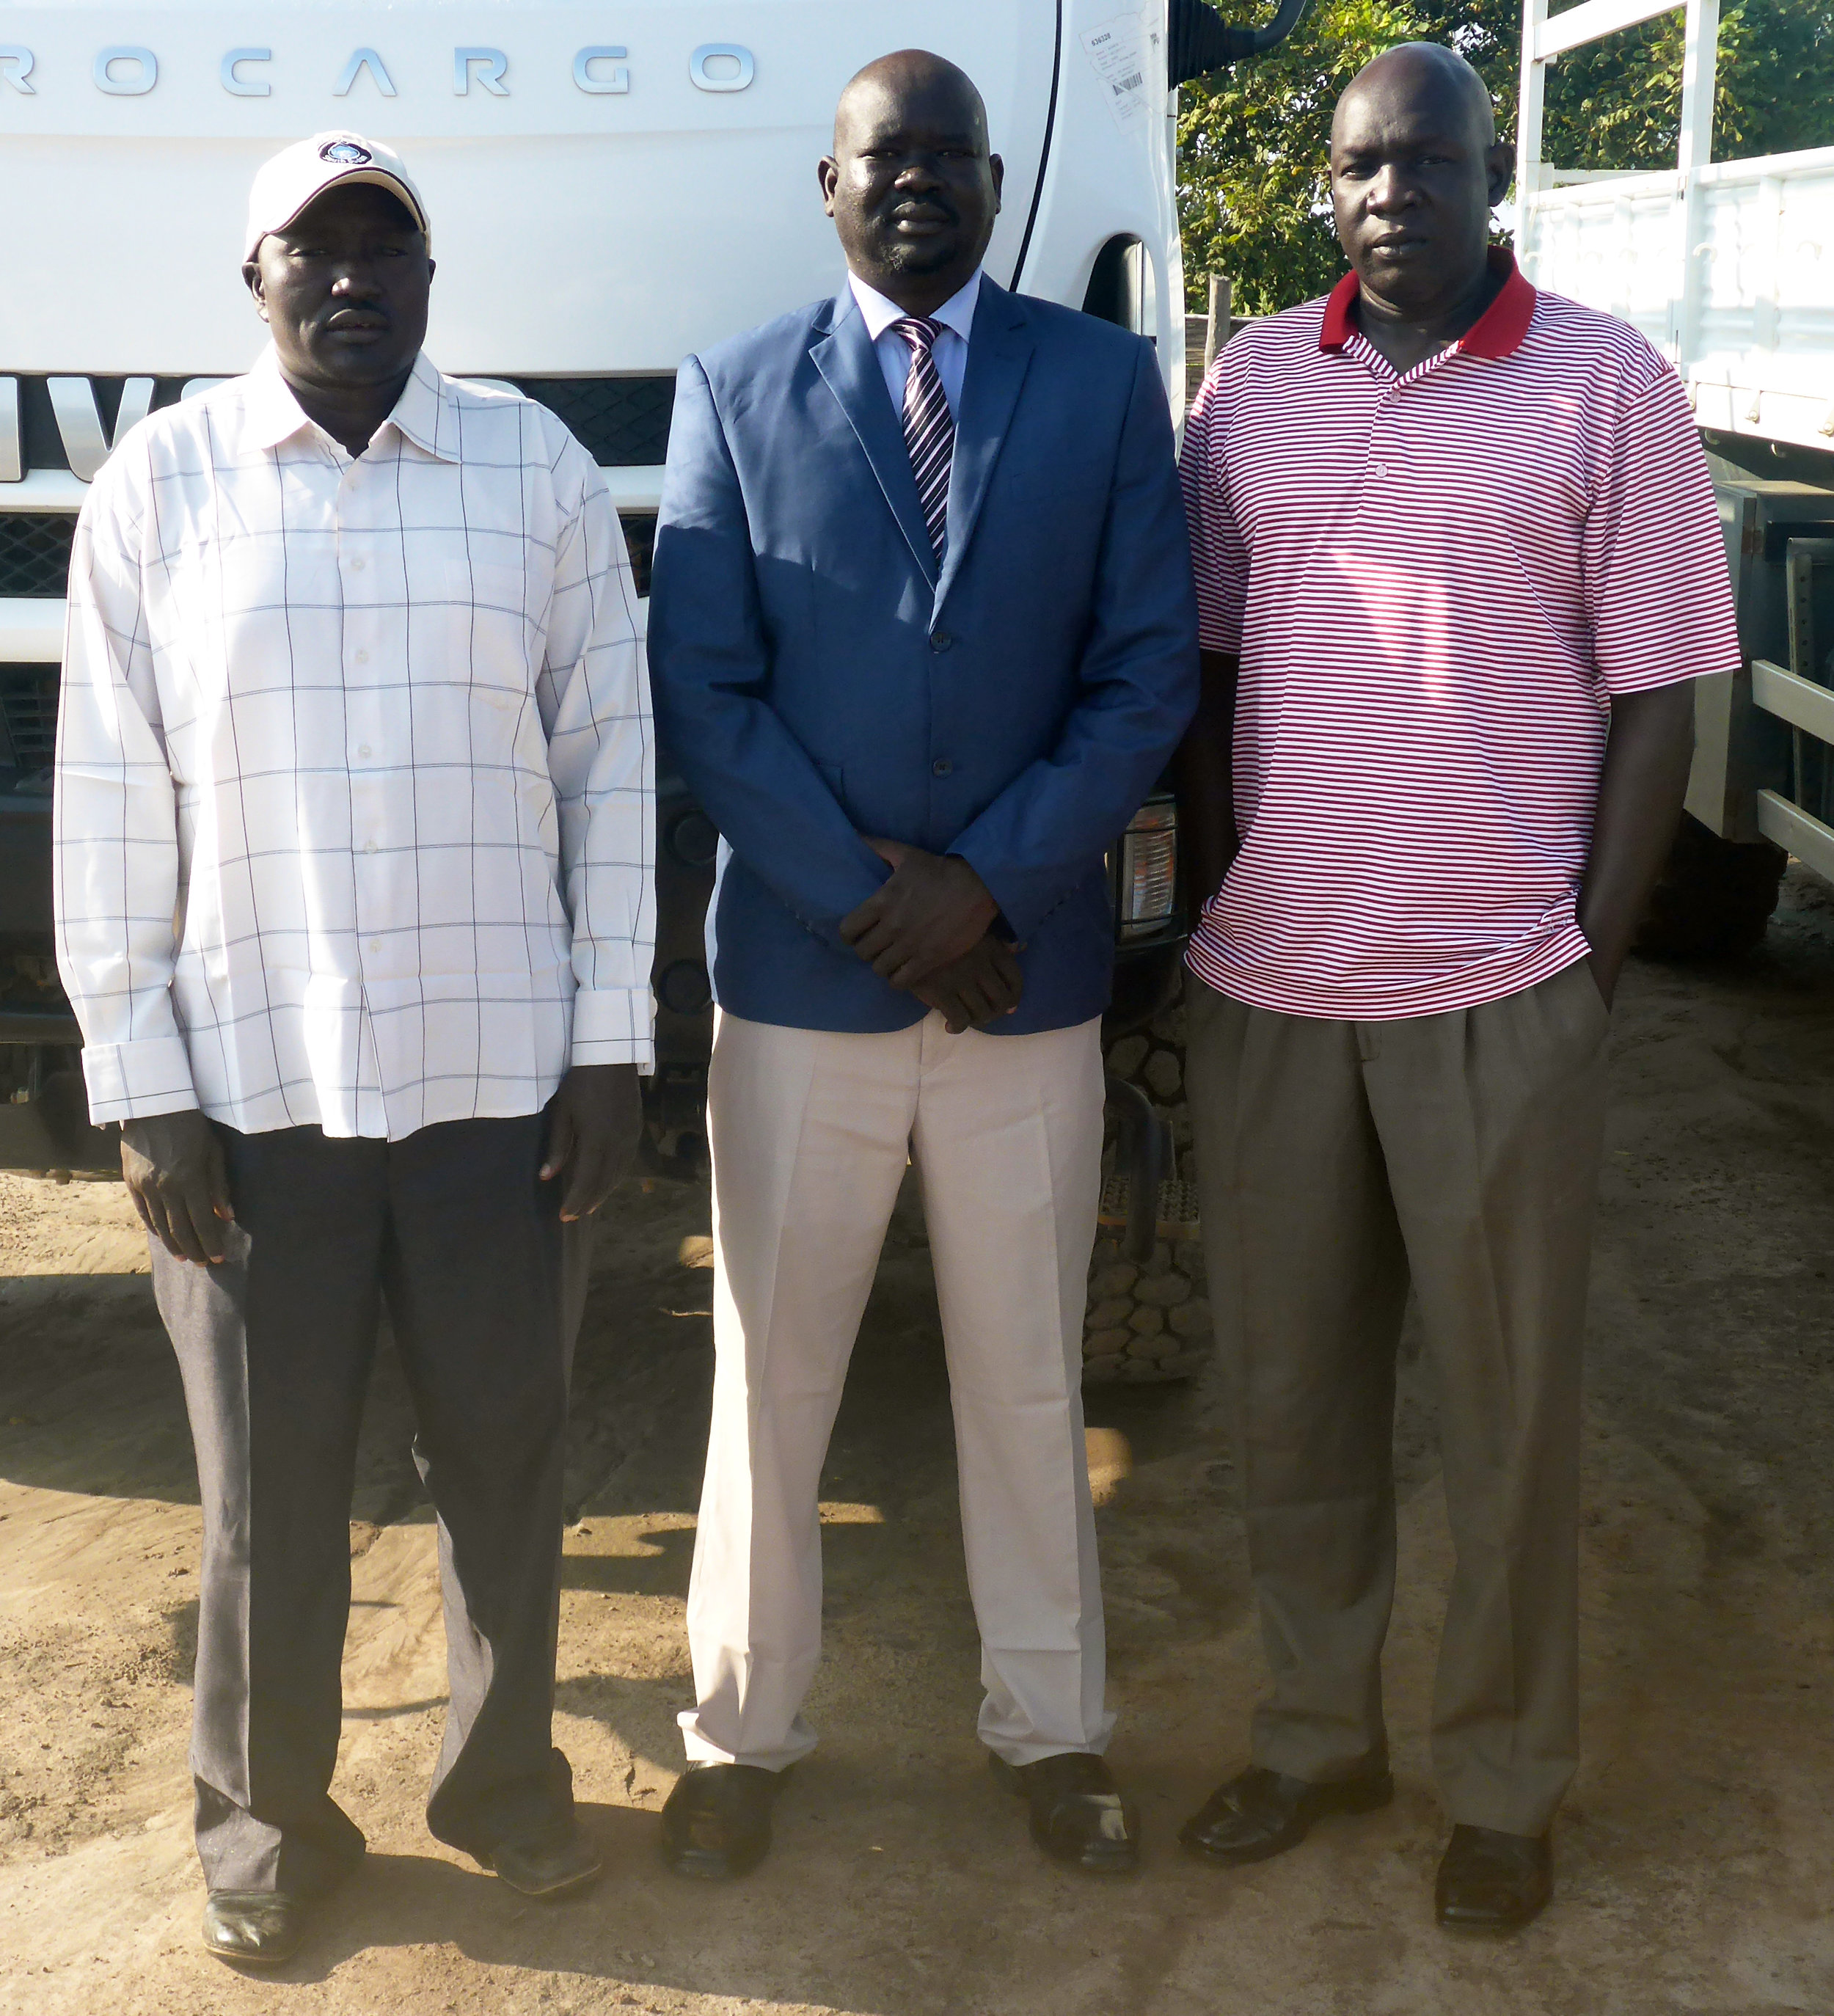 From left to right: Abraham (author), and Associate Country Directors  AJ  and  A ter